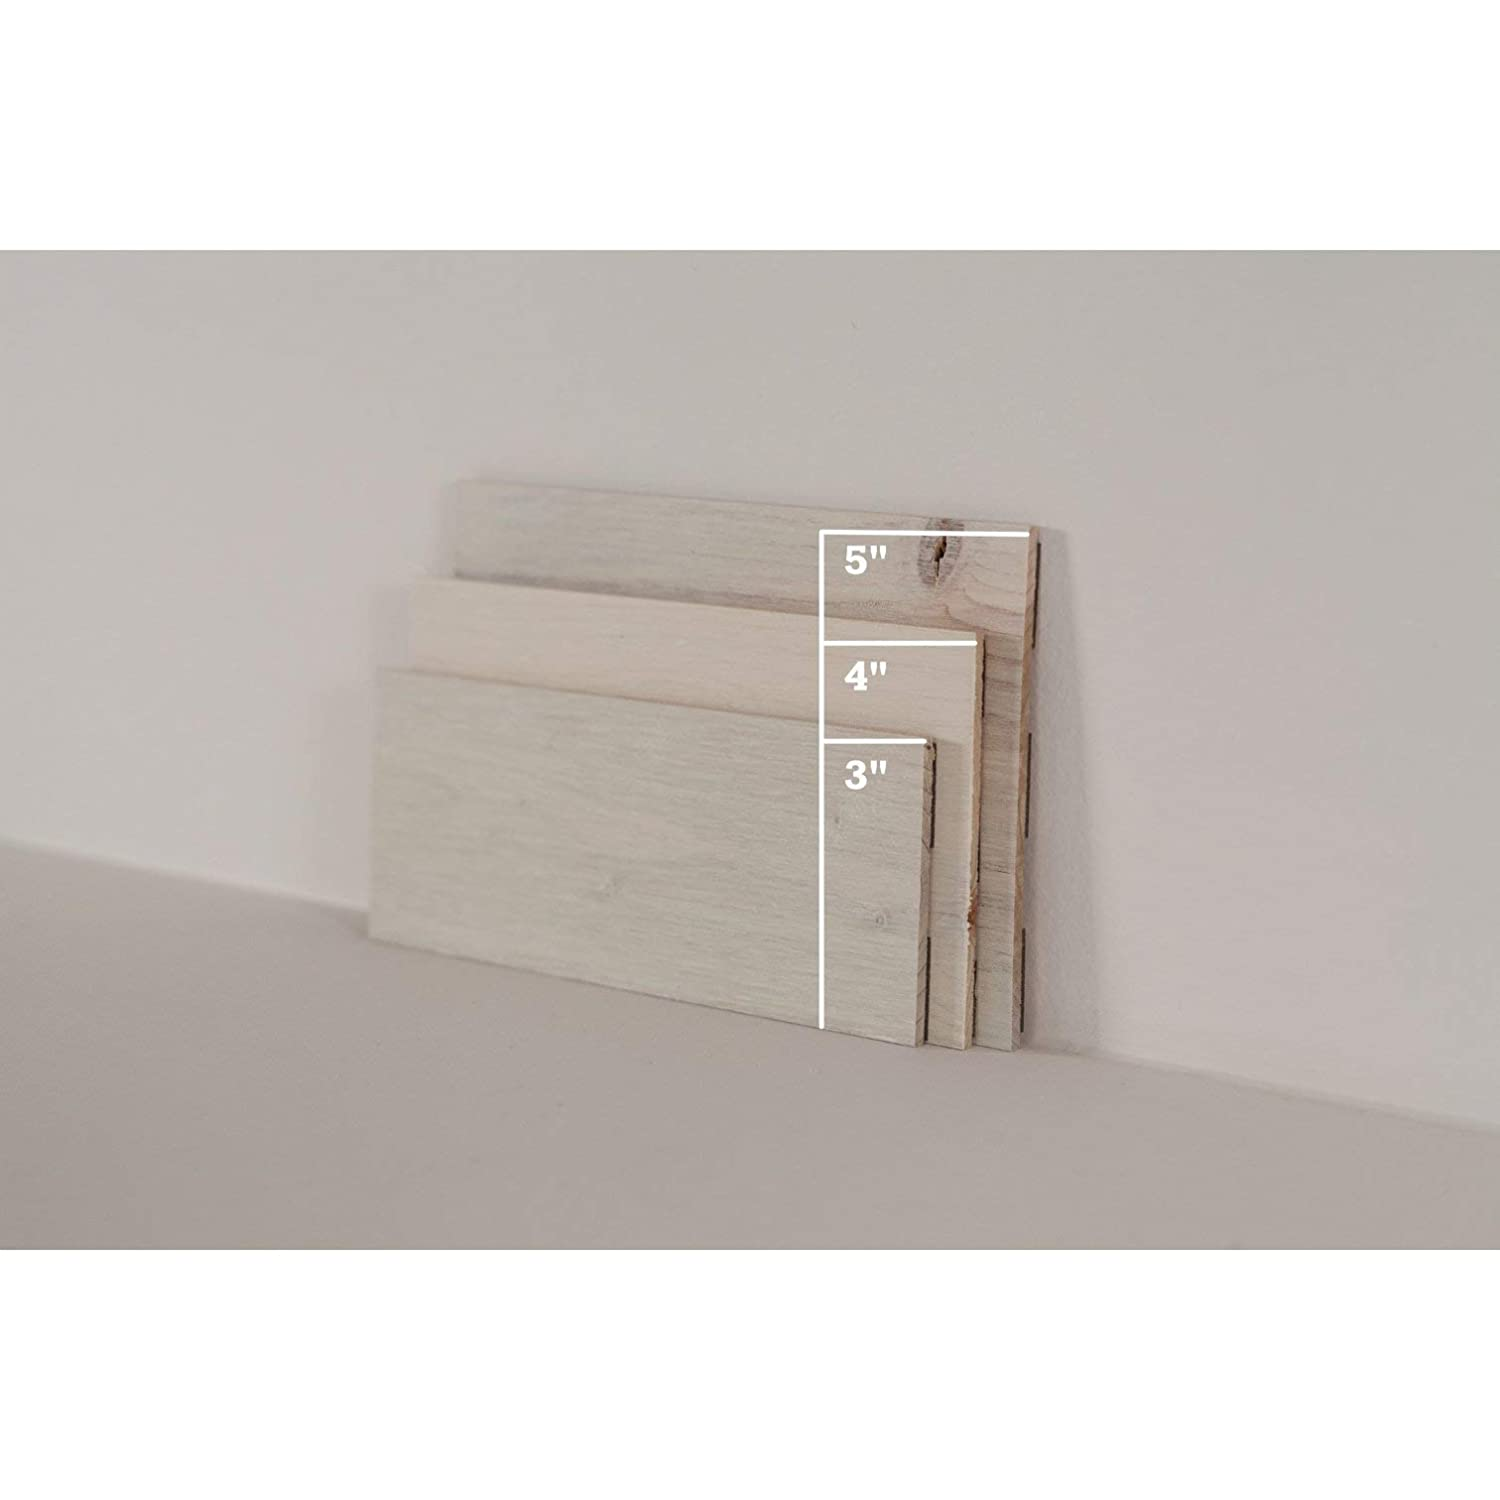 Simple Peel and Stick Application. Timberchic DIY Reclaimed Wooden Wall Planks 3 Wide - 40 Sq. Ft, River Planks